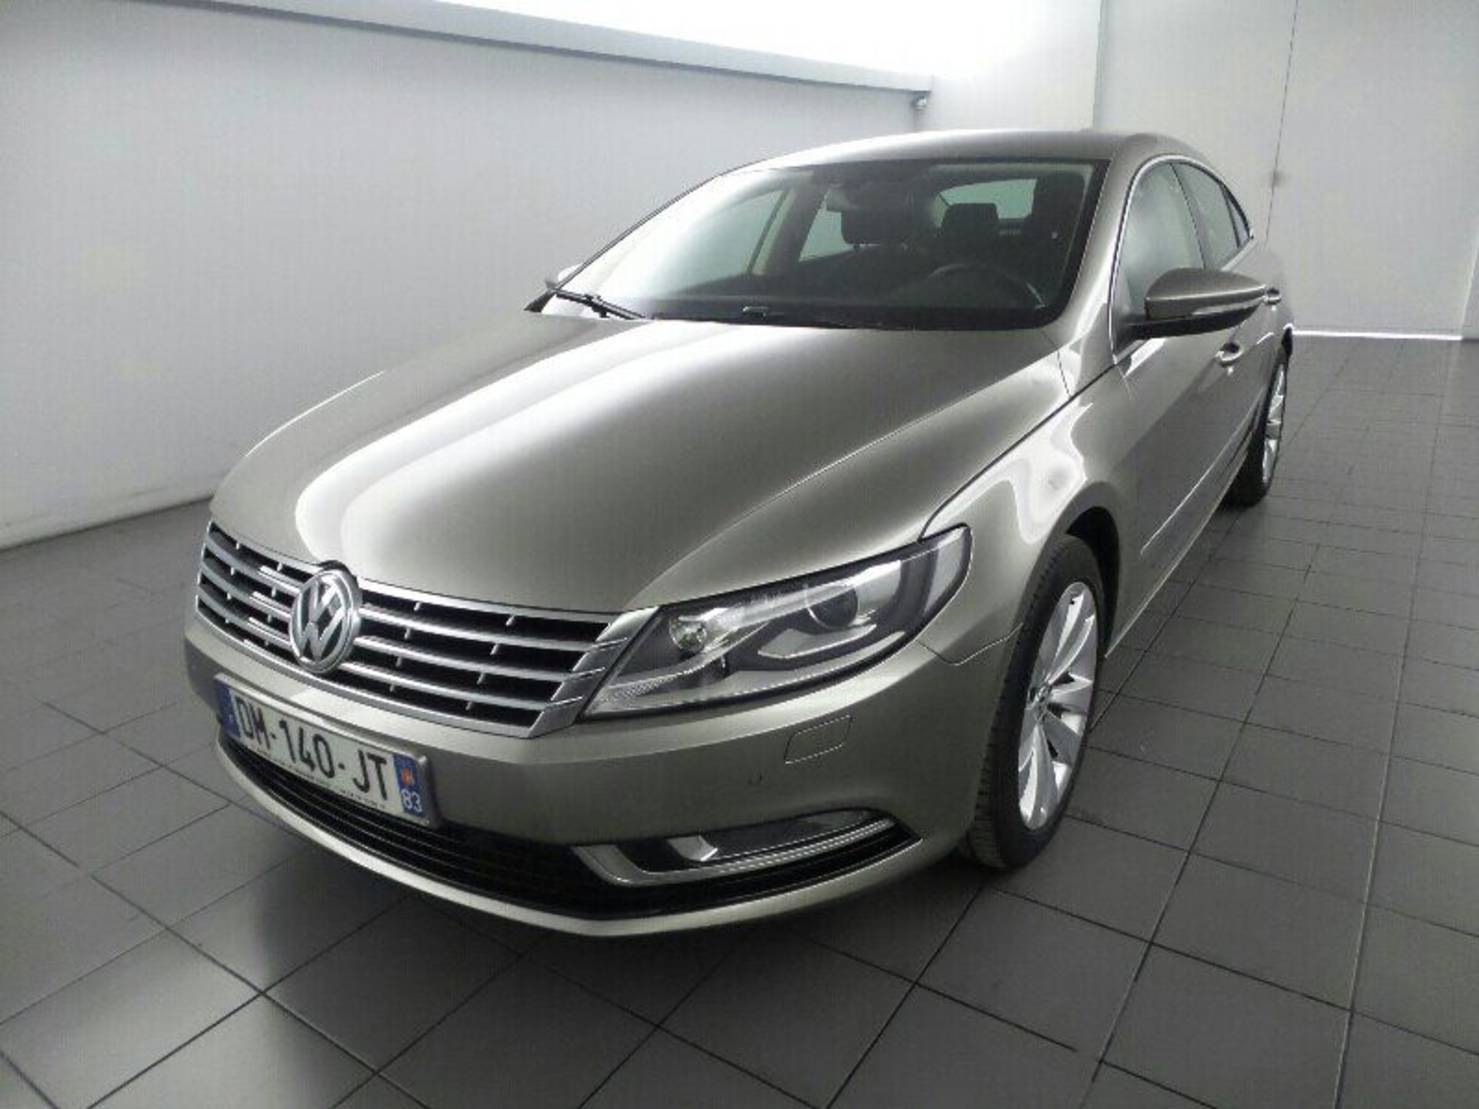 Volkswagen CC 2.0 TDI 140 FAP BlueMotion Technology, Business DSG6 detail1